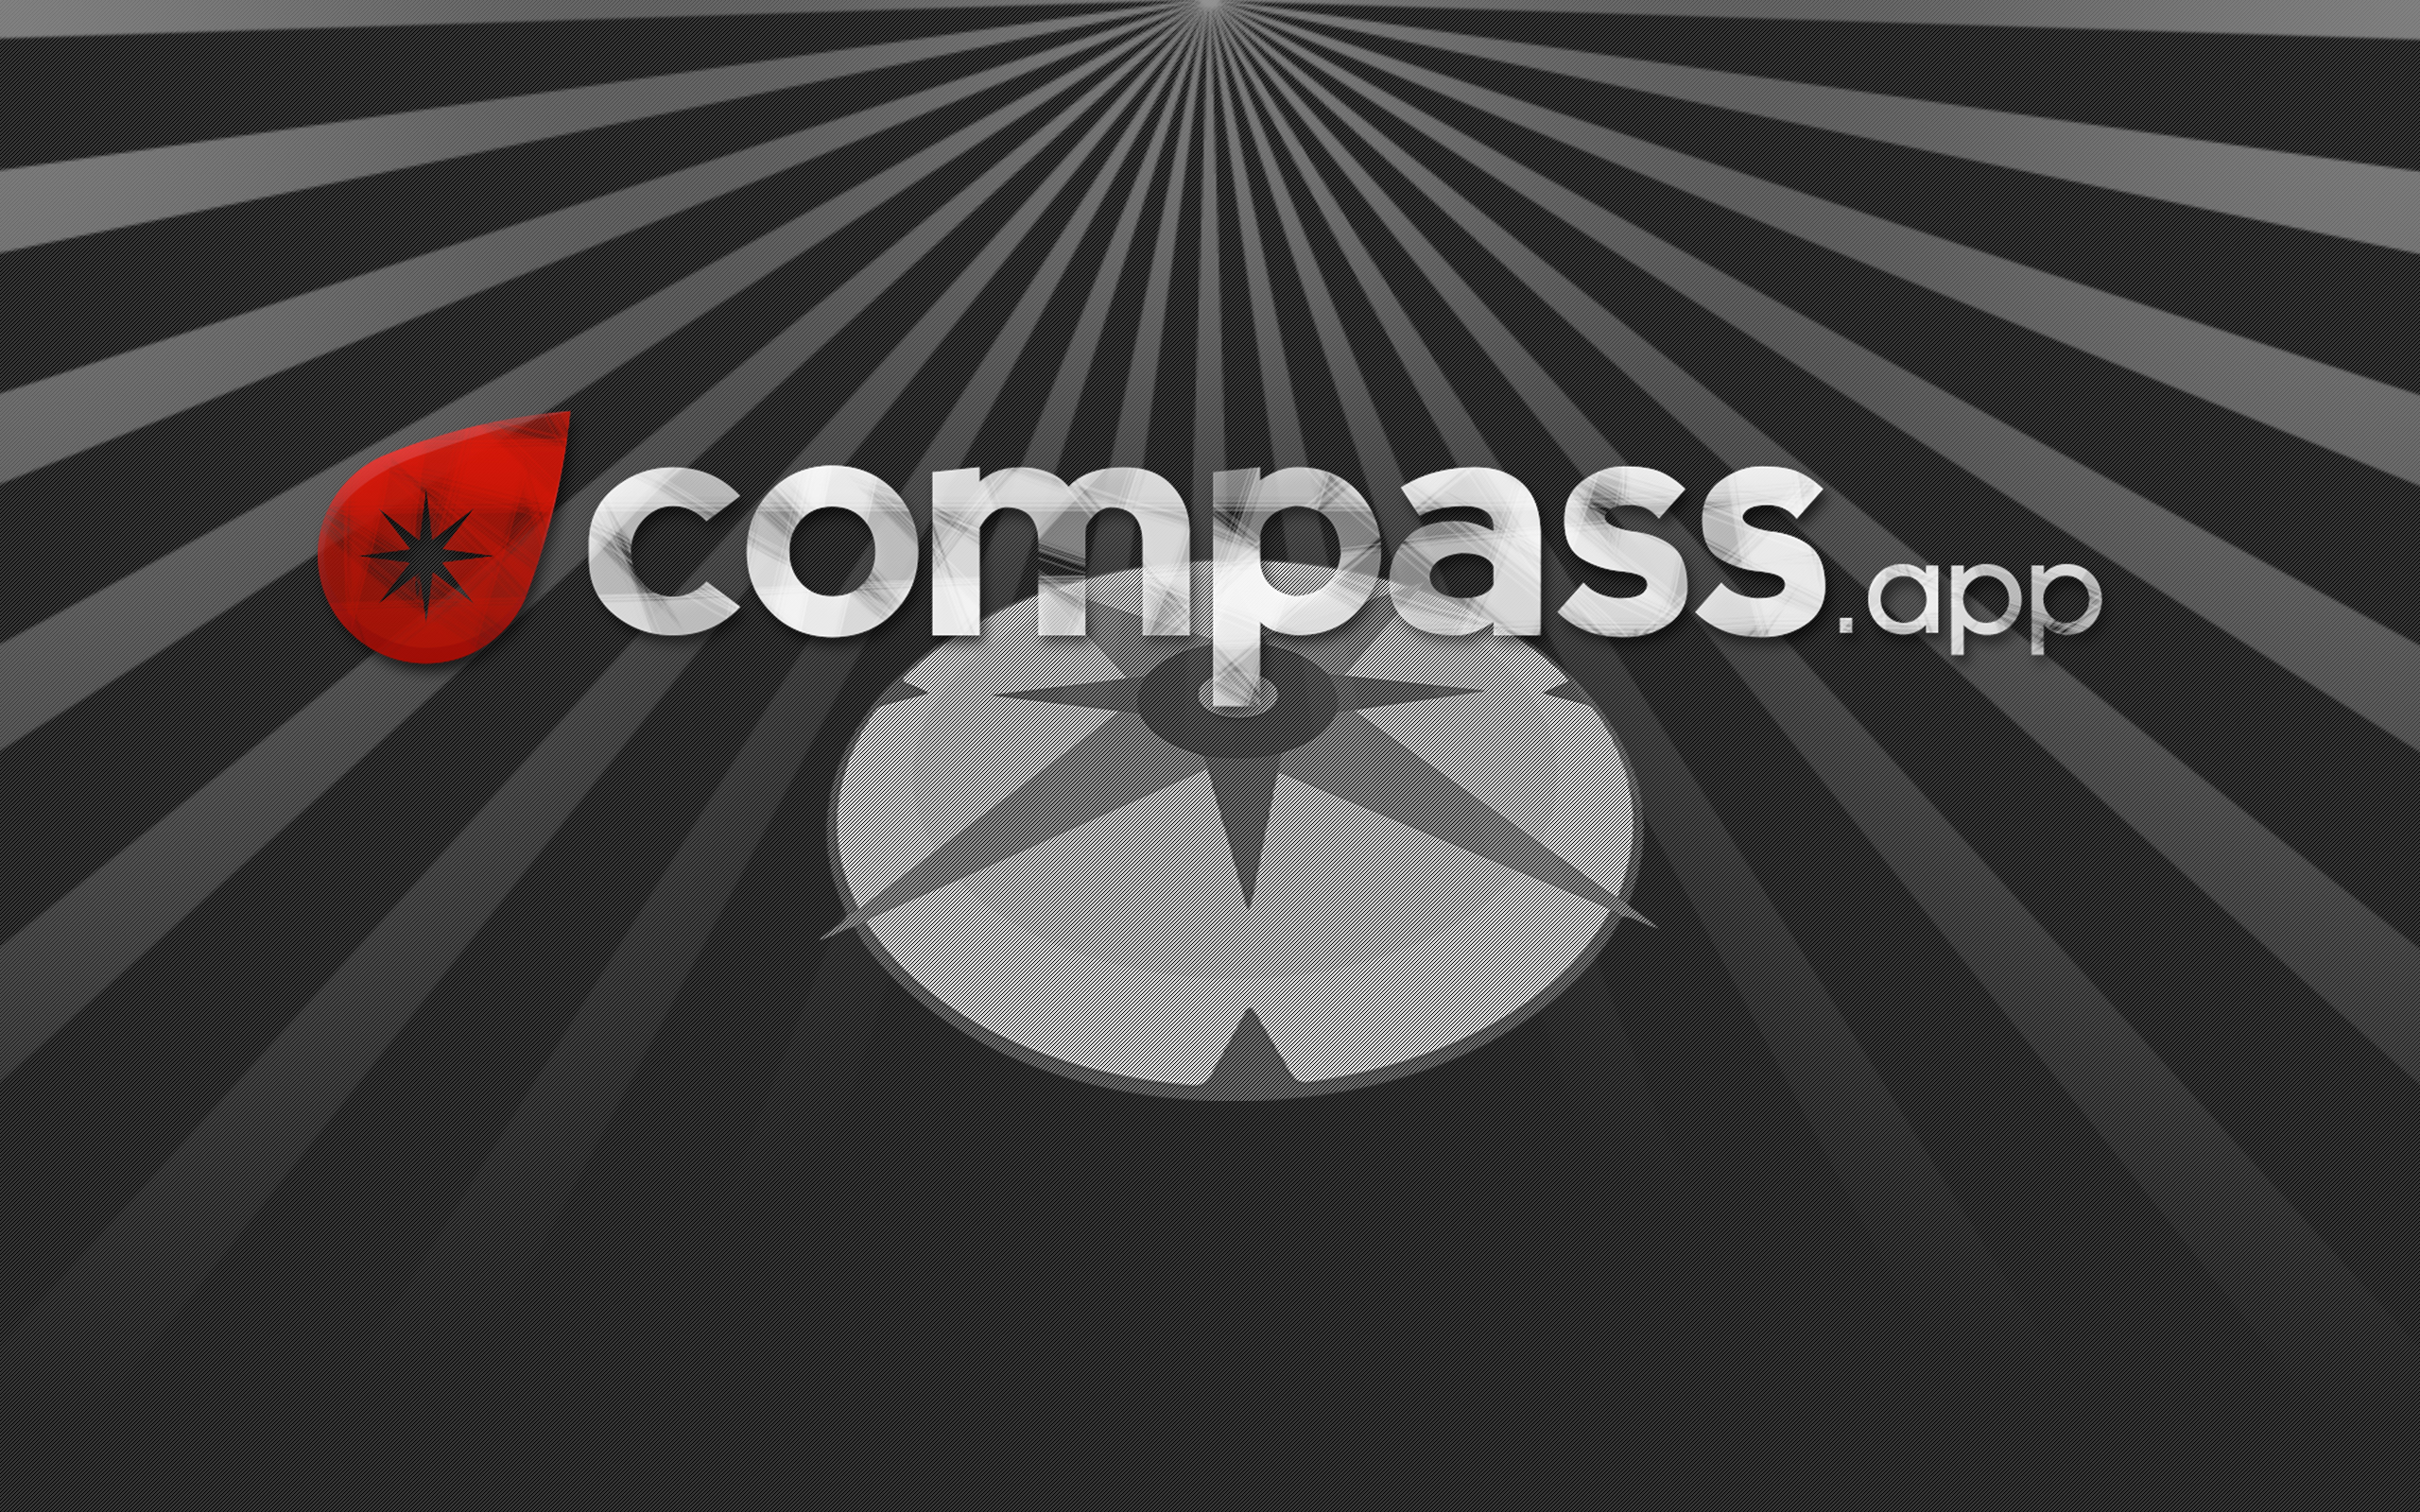 Compass App Compile Sass Compass Easily Without Resorting